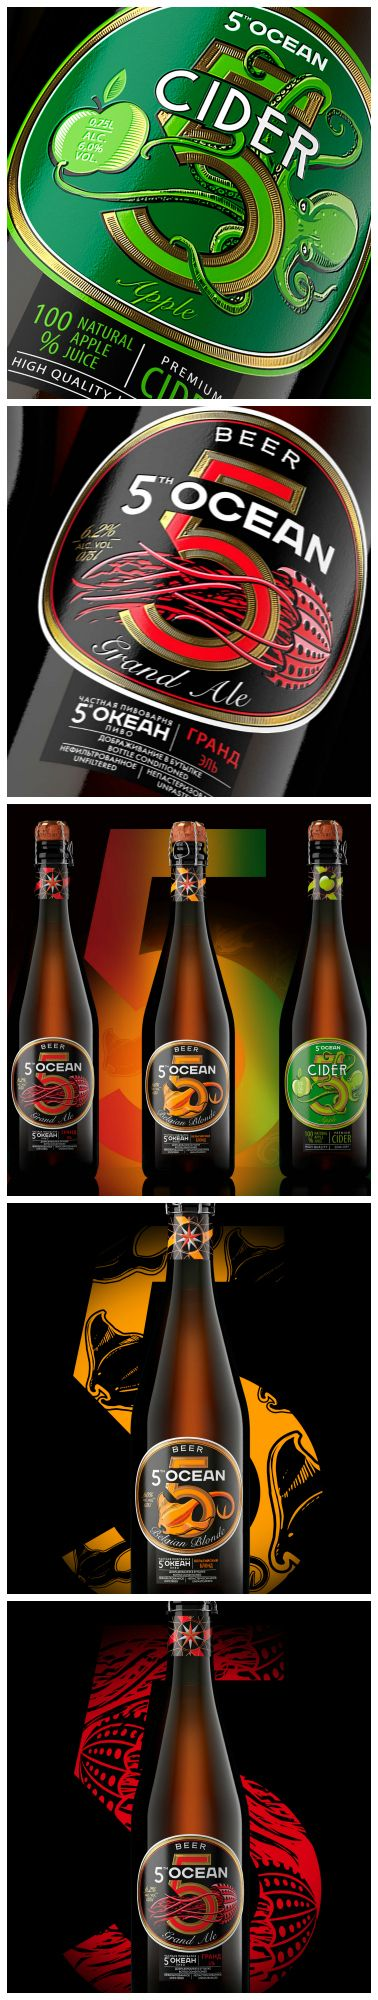 Belgian Style Beer Created by Russian Craft Beer Brand with Distinct Illustration Design Agency:DDH Branding Consultancy Project Name:5th Ocean Brewery Category: #beer #drink